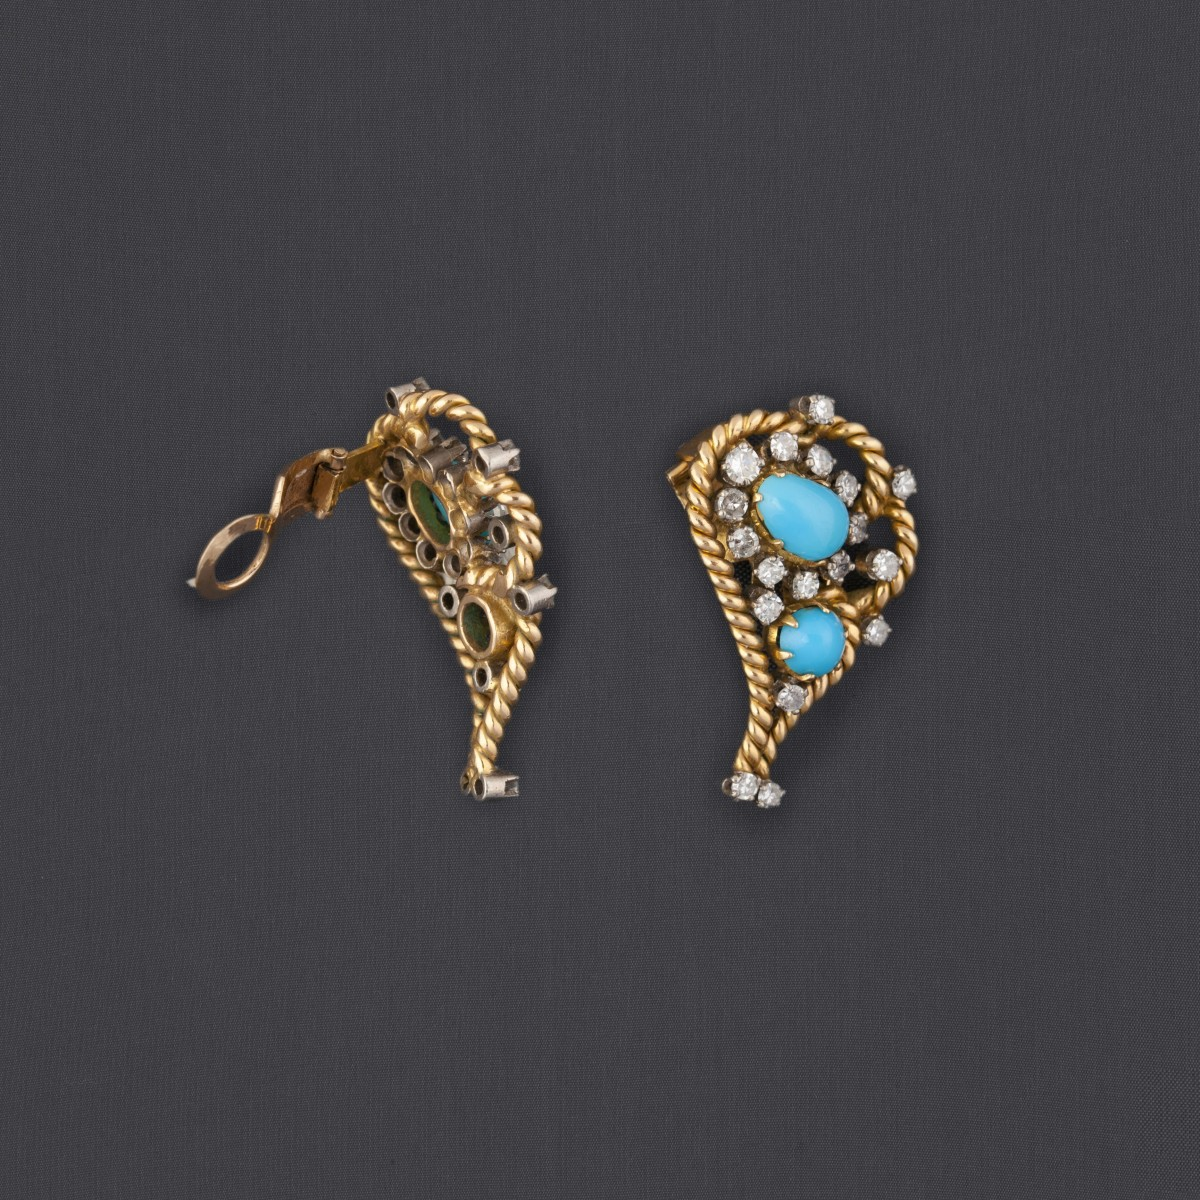 boucles oreilles clips turquoises et diamants. Black Bedroom Furniture Sets. Home Design Ideas